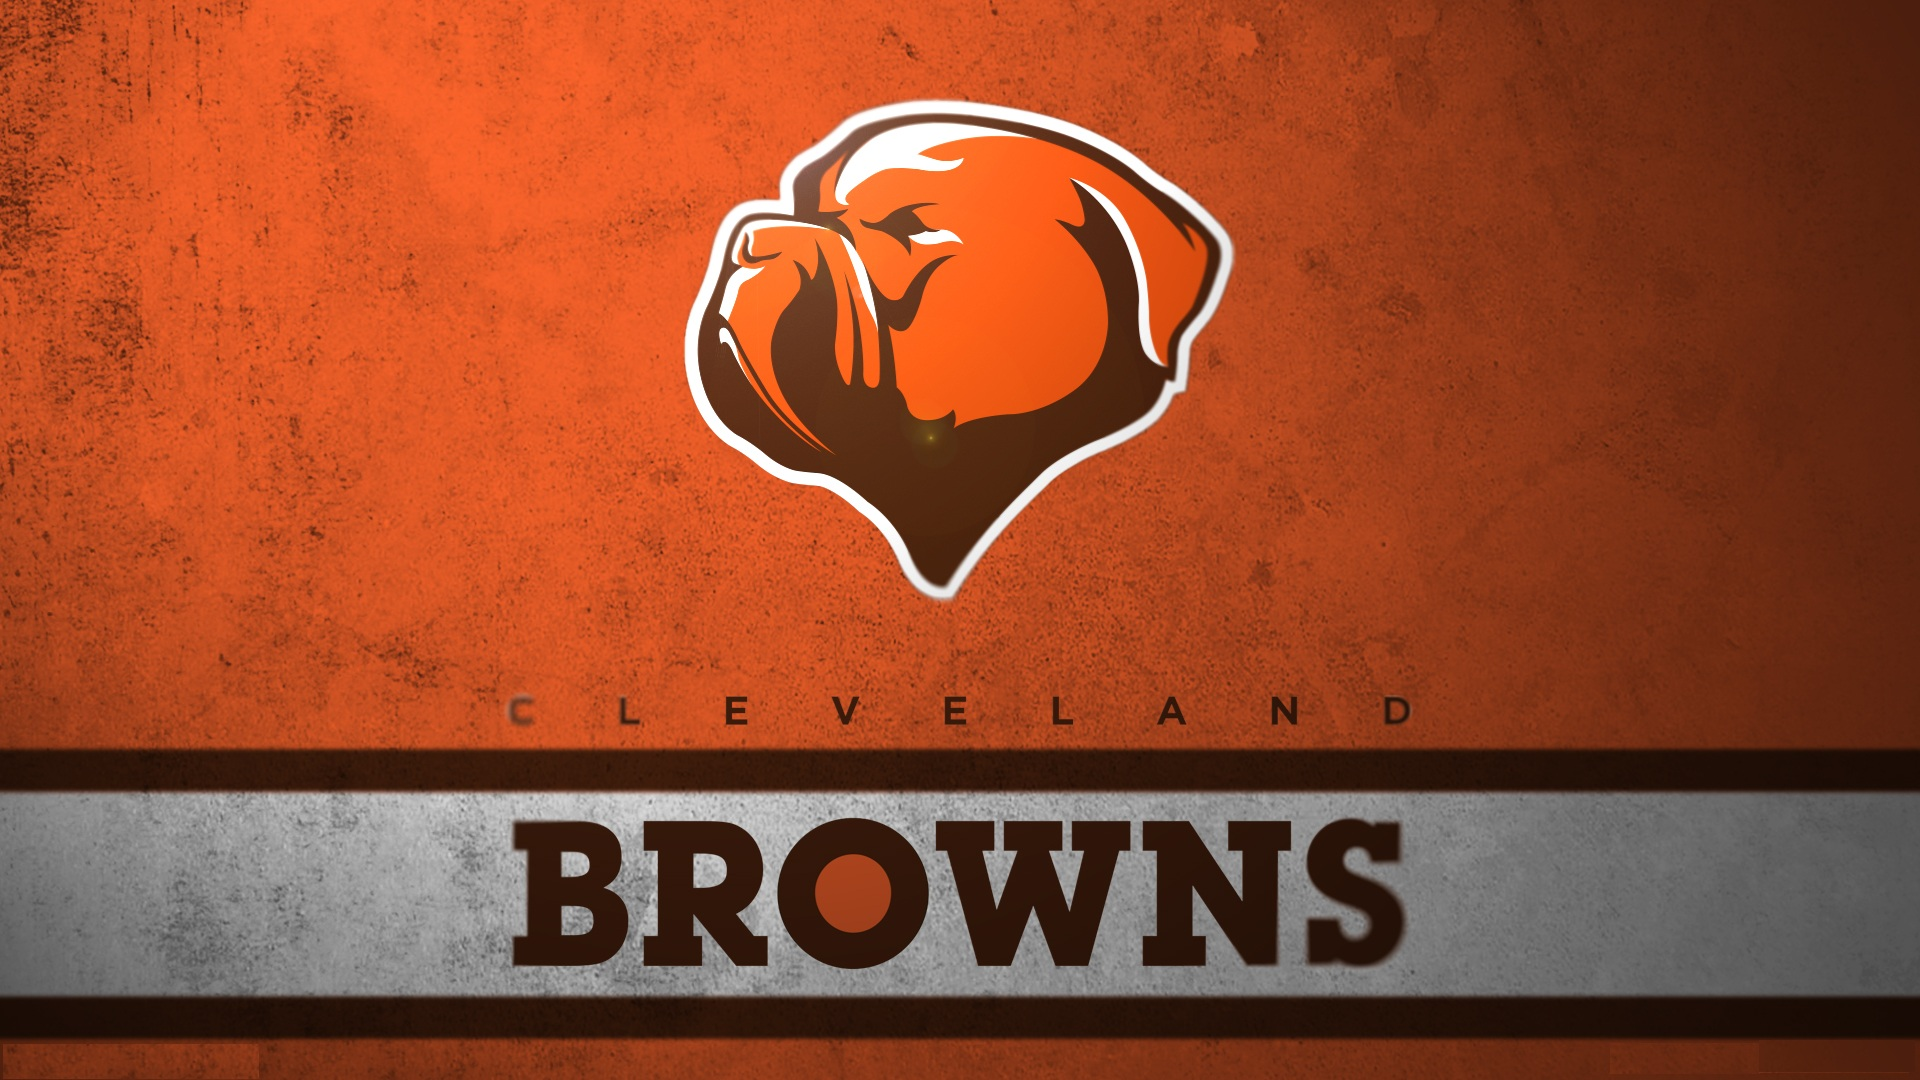 The history of the Cleveland Browns American football team began in 1944 when taxicab magnate Arthur B Mickey McBride secured a Cleveland franchise in the newly